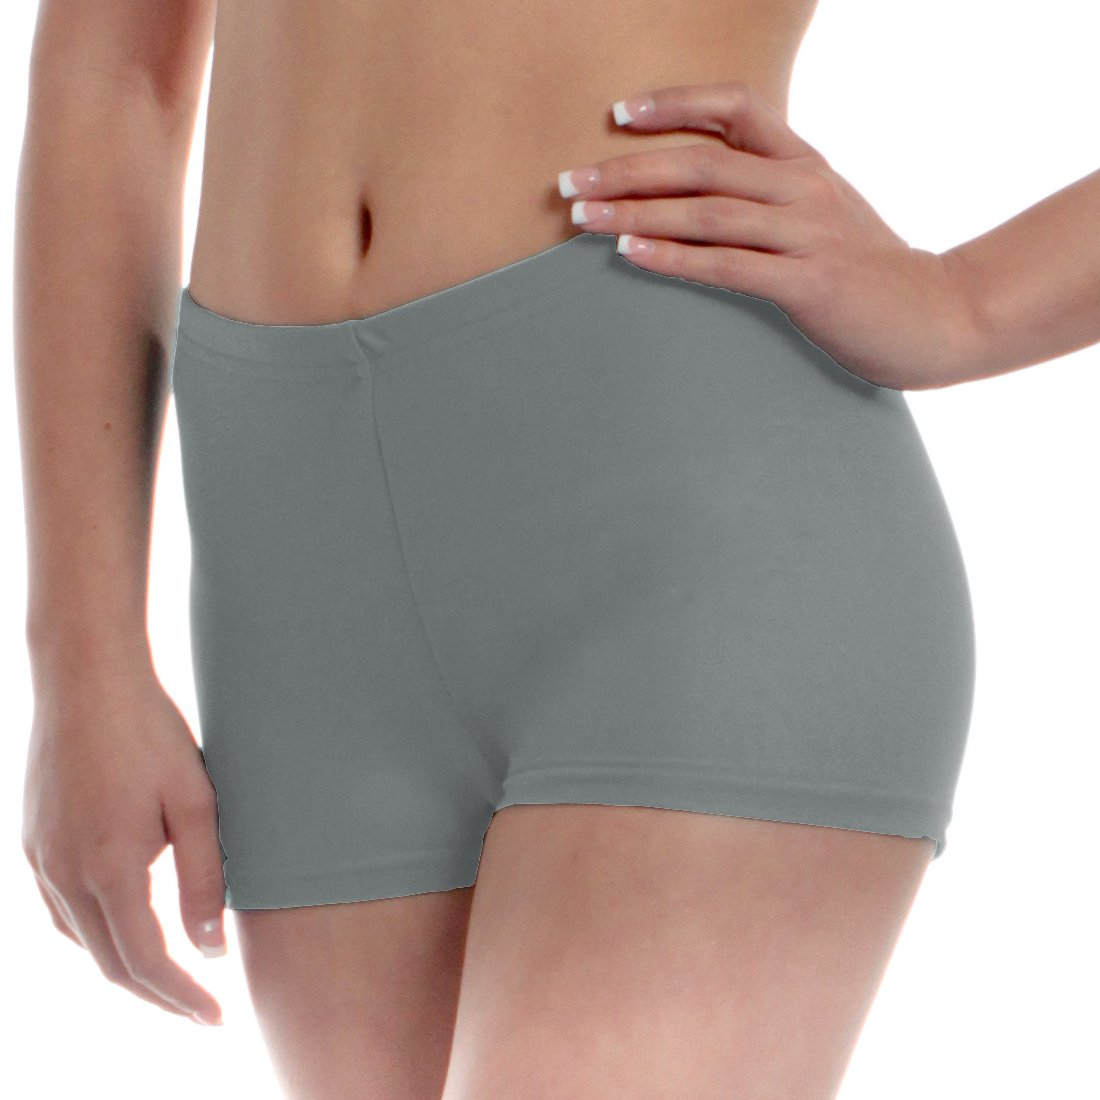 Mens Long Dance Shorts Medium Gray by B Dancewear Adult Sizes by Bailar Dancewear